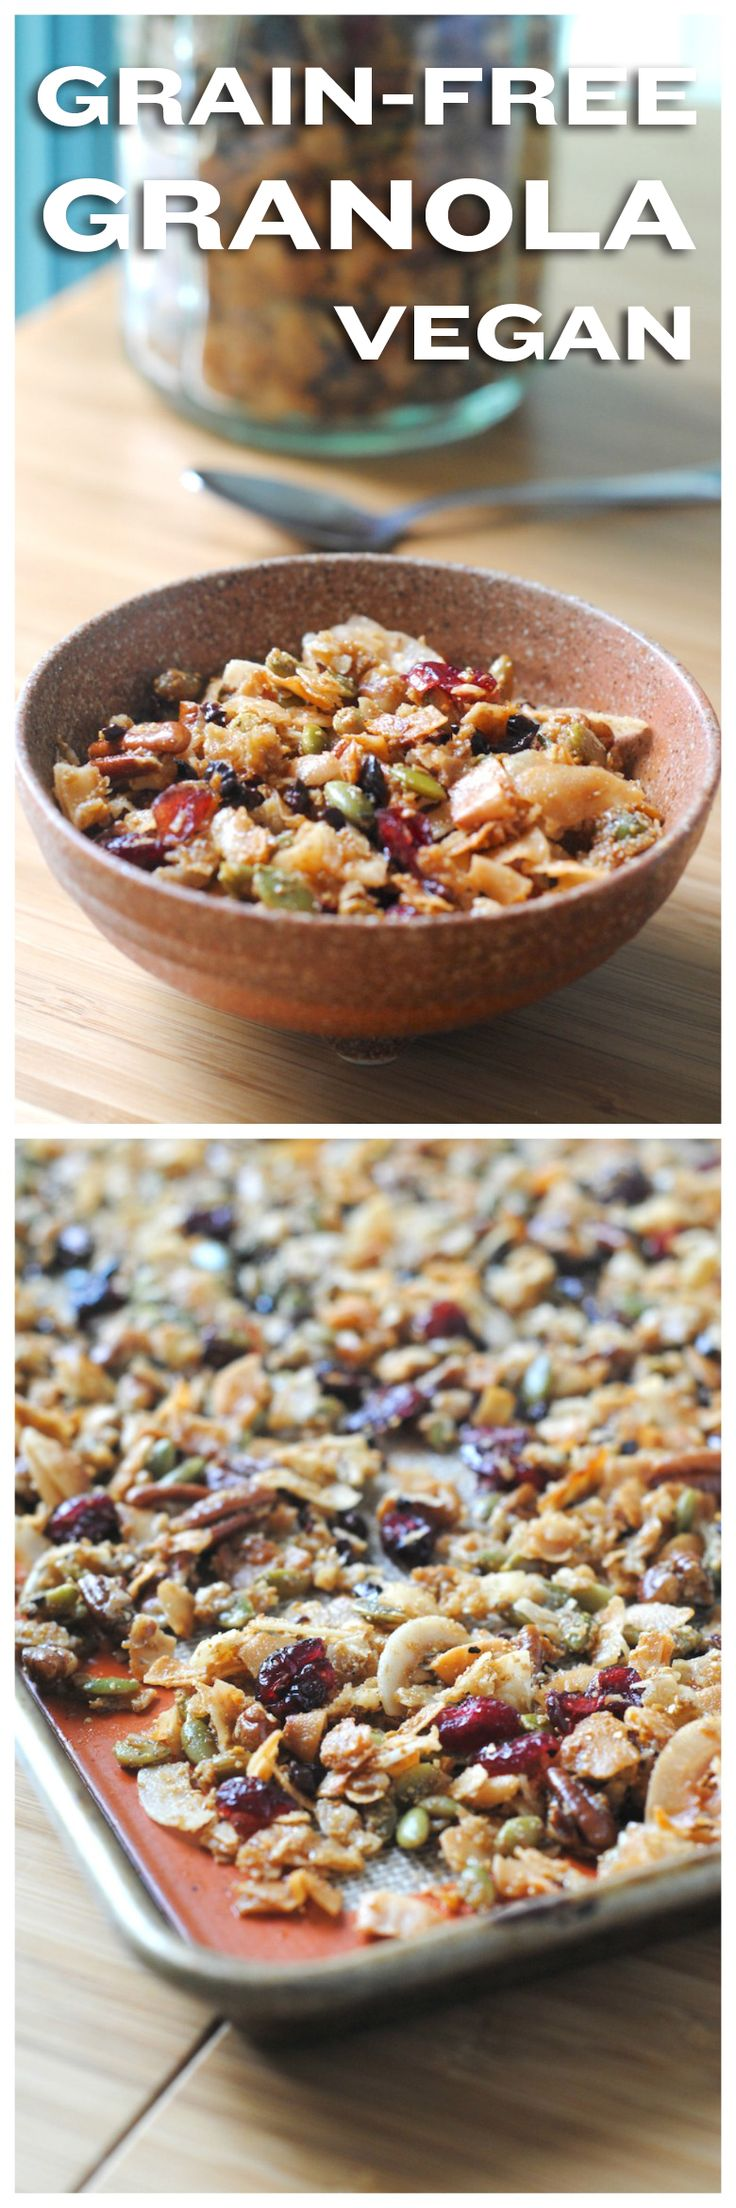 Grain-free, vegan, granola. A simple, gluten-free recipe made with simple ingredients.